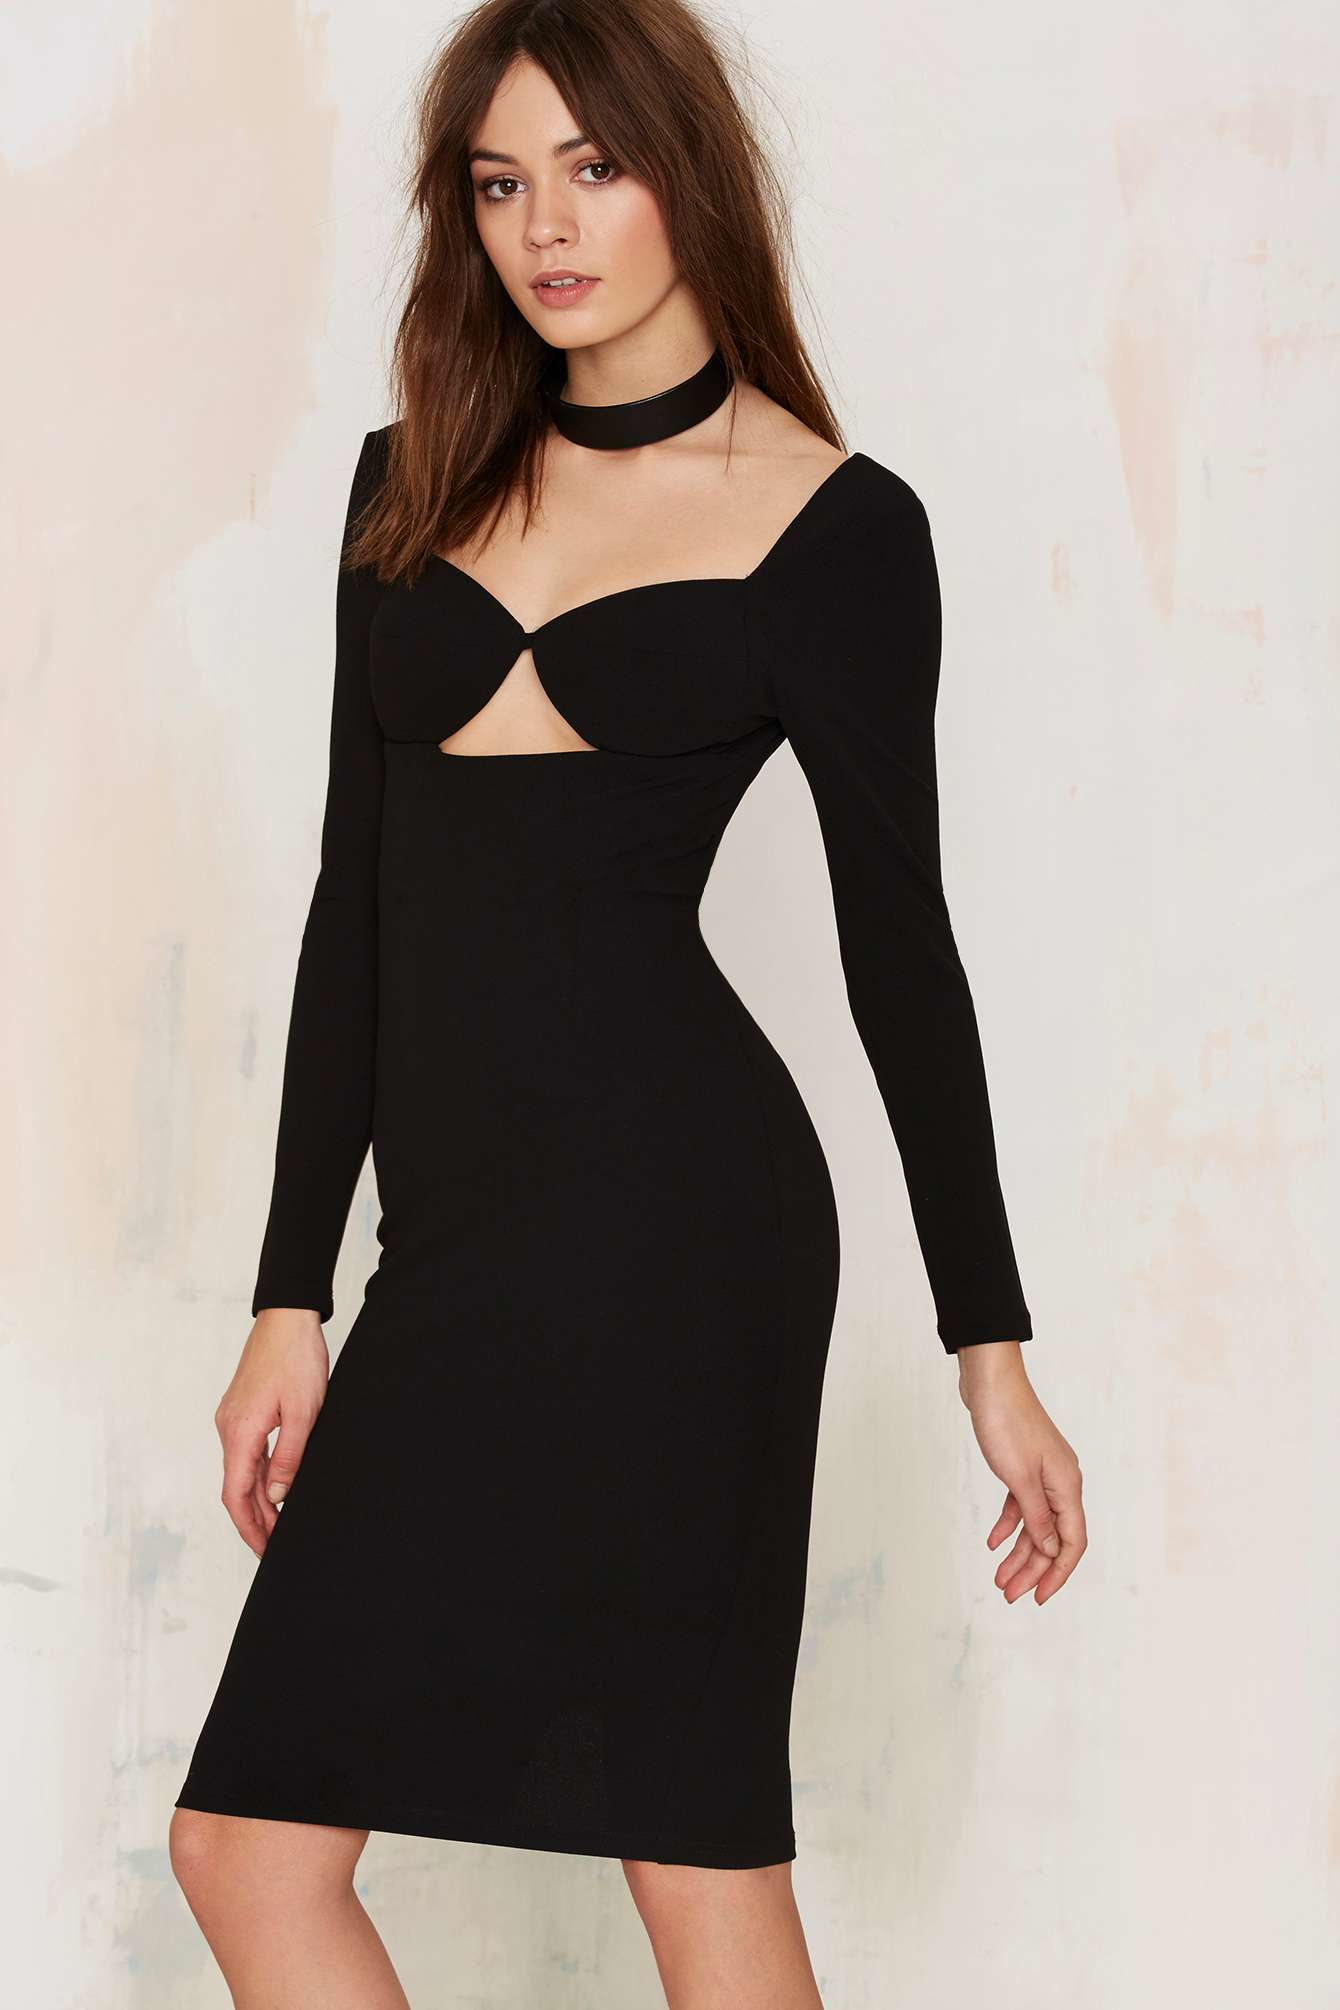 Over bodycon what dress wear to